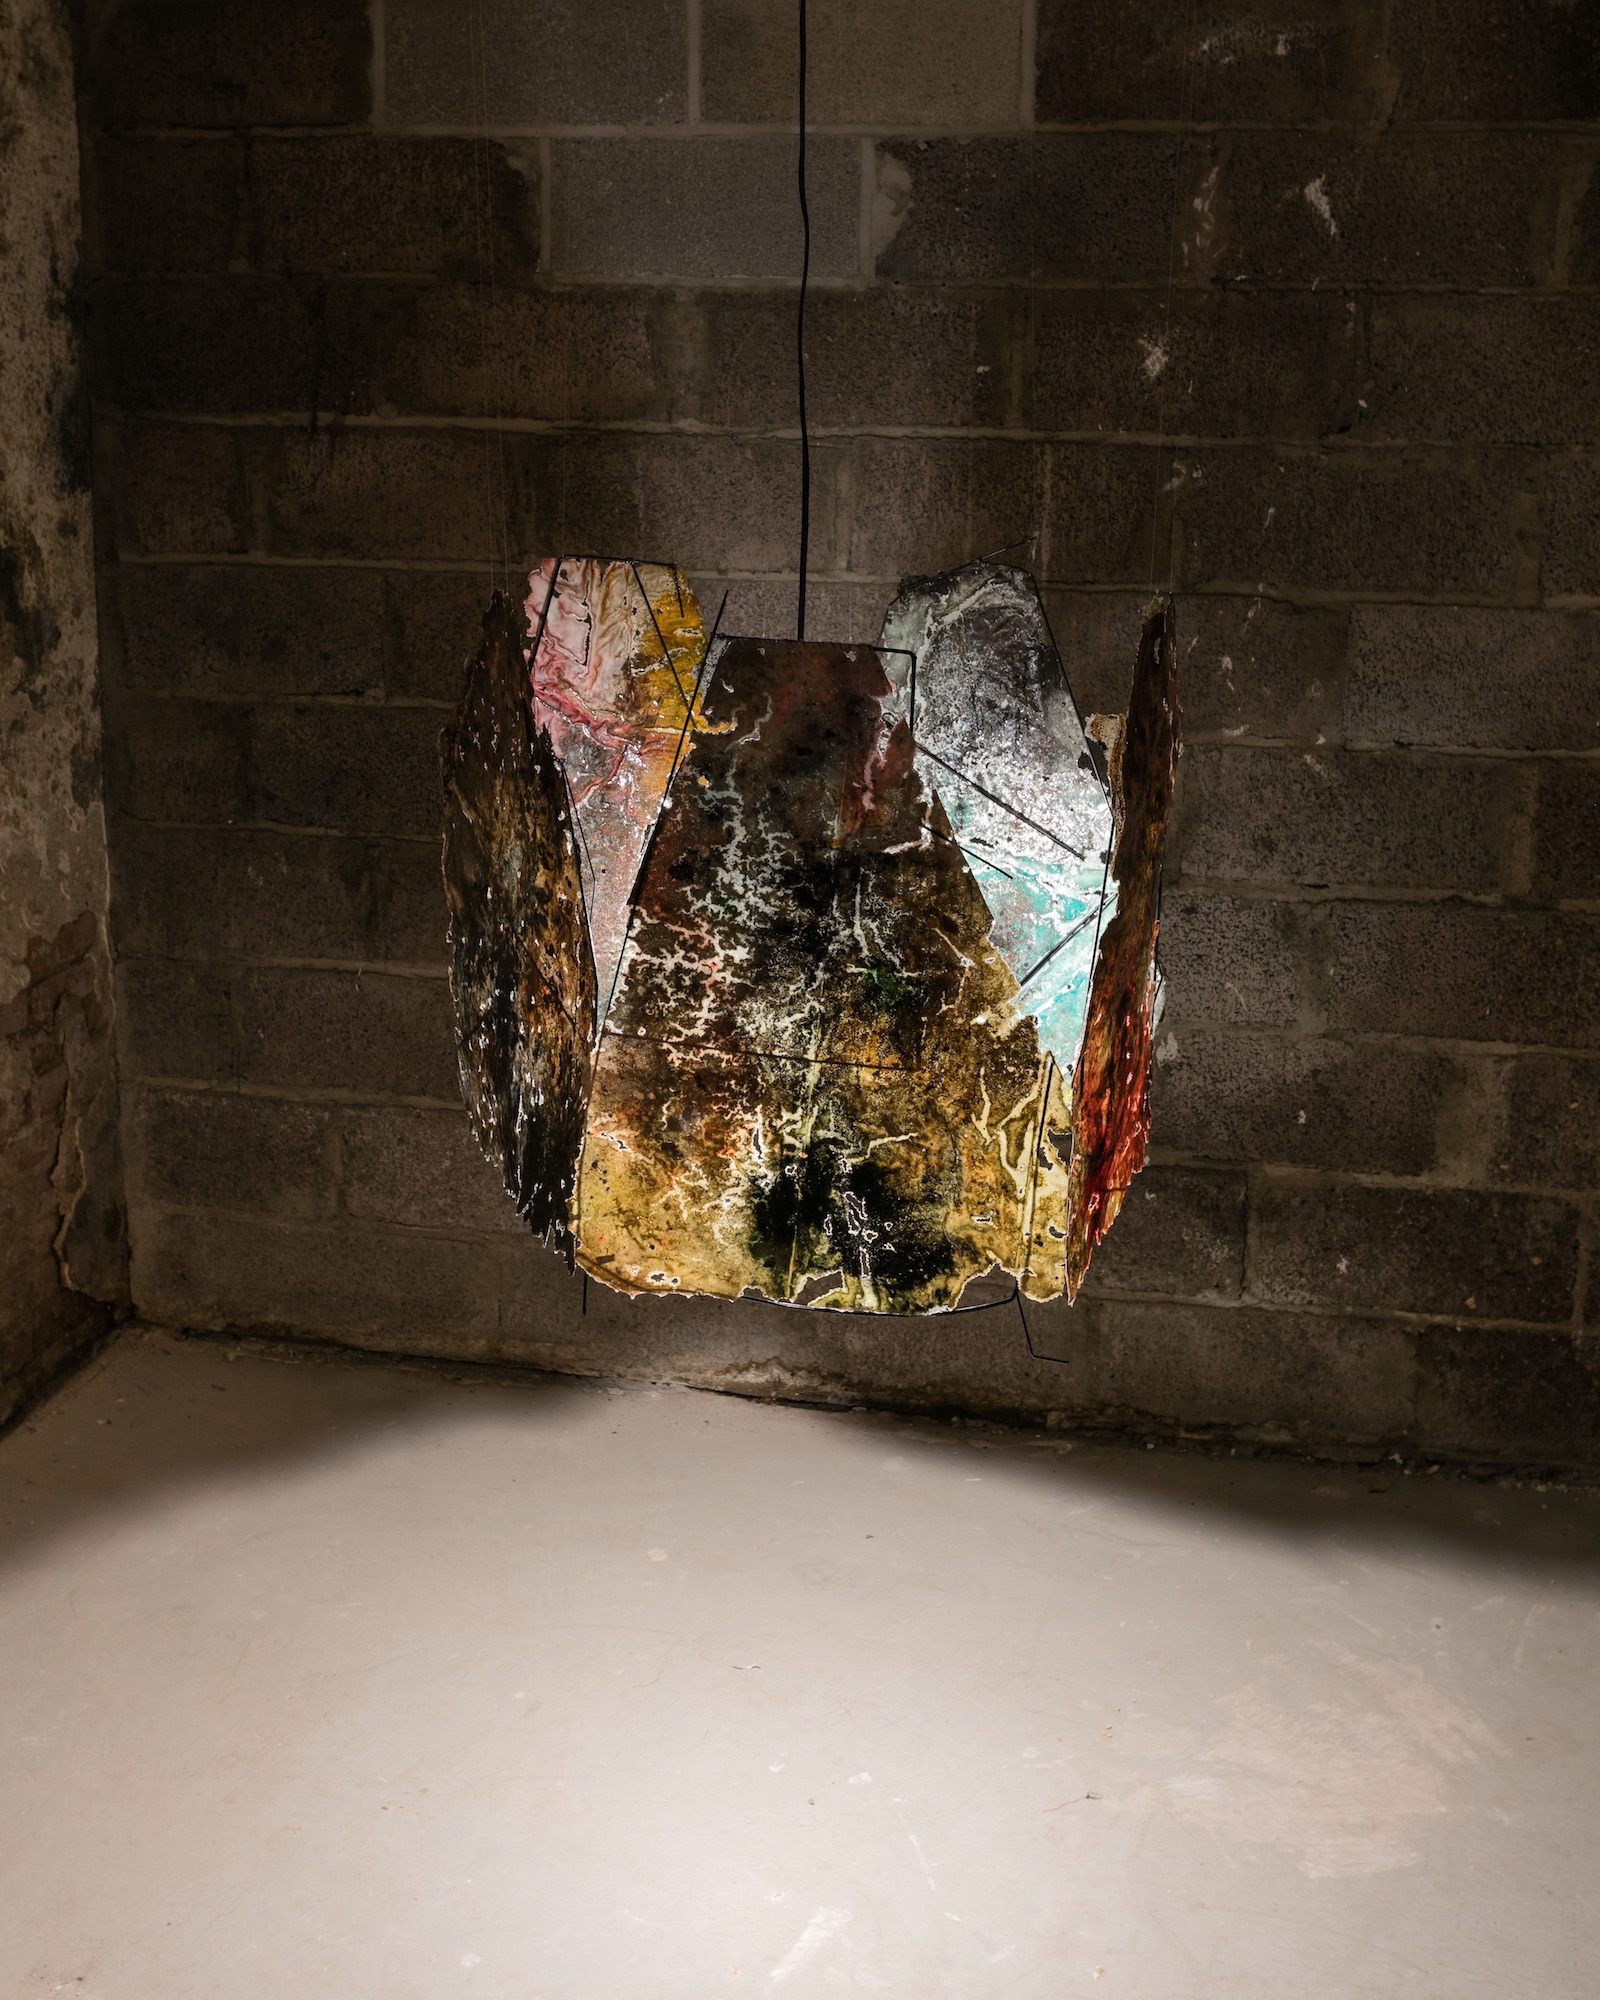 Vanessa Thill  The Lanterns,  2018 Salt, spray paint, microbeads, spices, charcoal, coffee, wine, fake blood, fabric dye, glue, resin, and mixed media on paper; umbrella spokes, wire, and thread; light fixture 24 x 30 x 30 inches